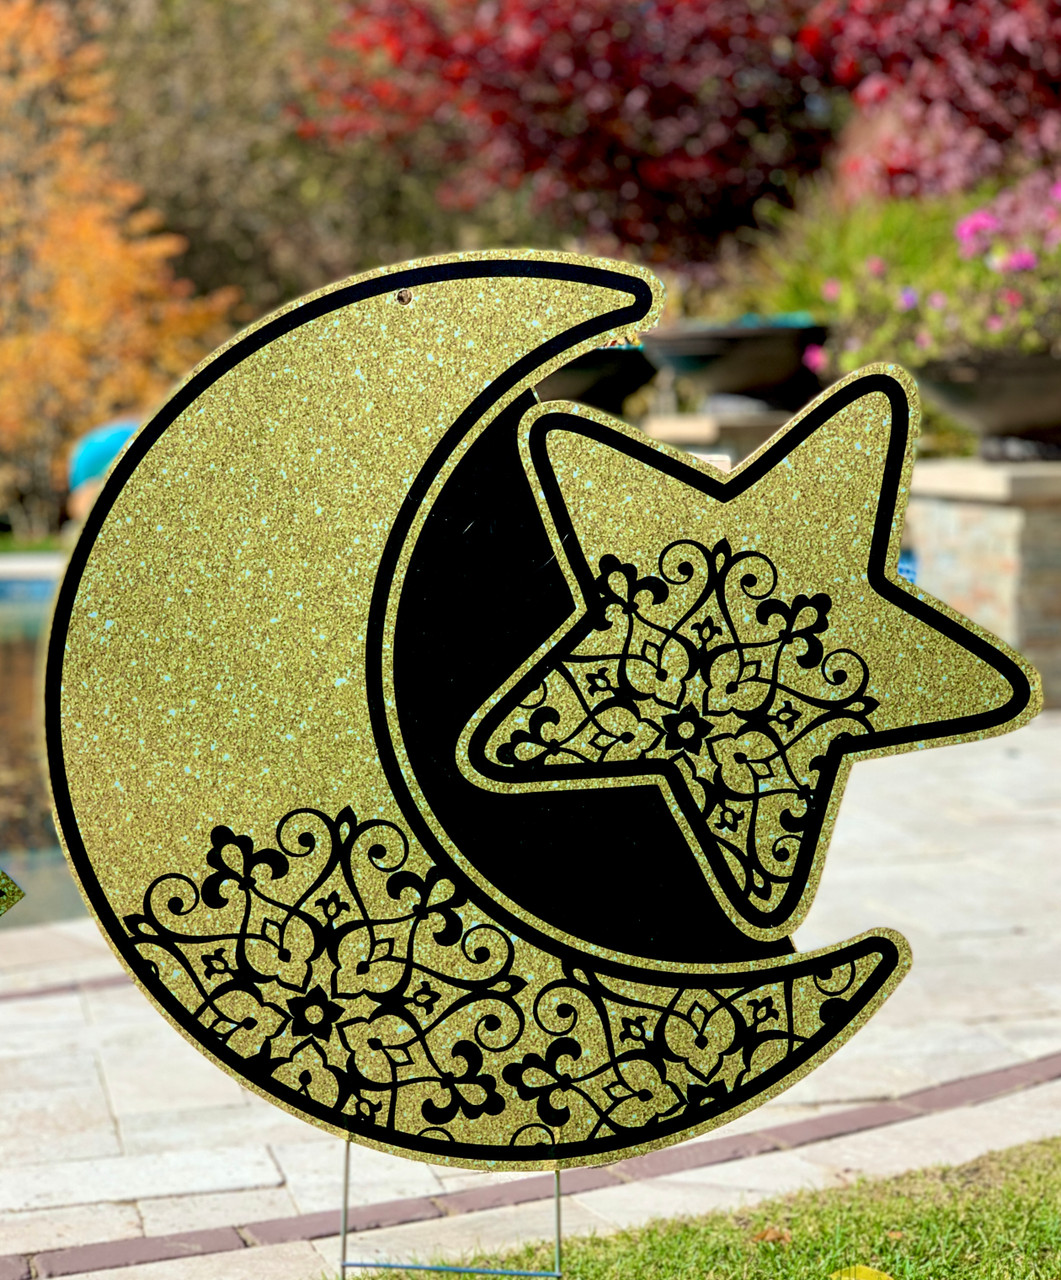 Large Moon and Star Yard Sign-Multi Use Indoor/Outdoor (Stake Included)